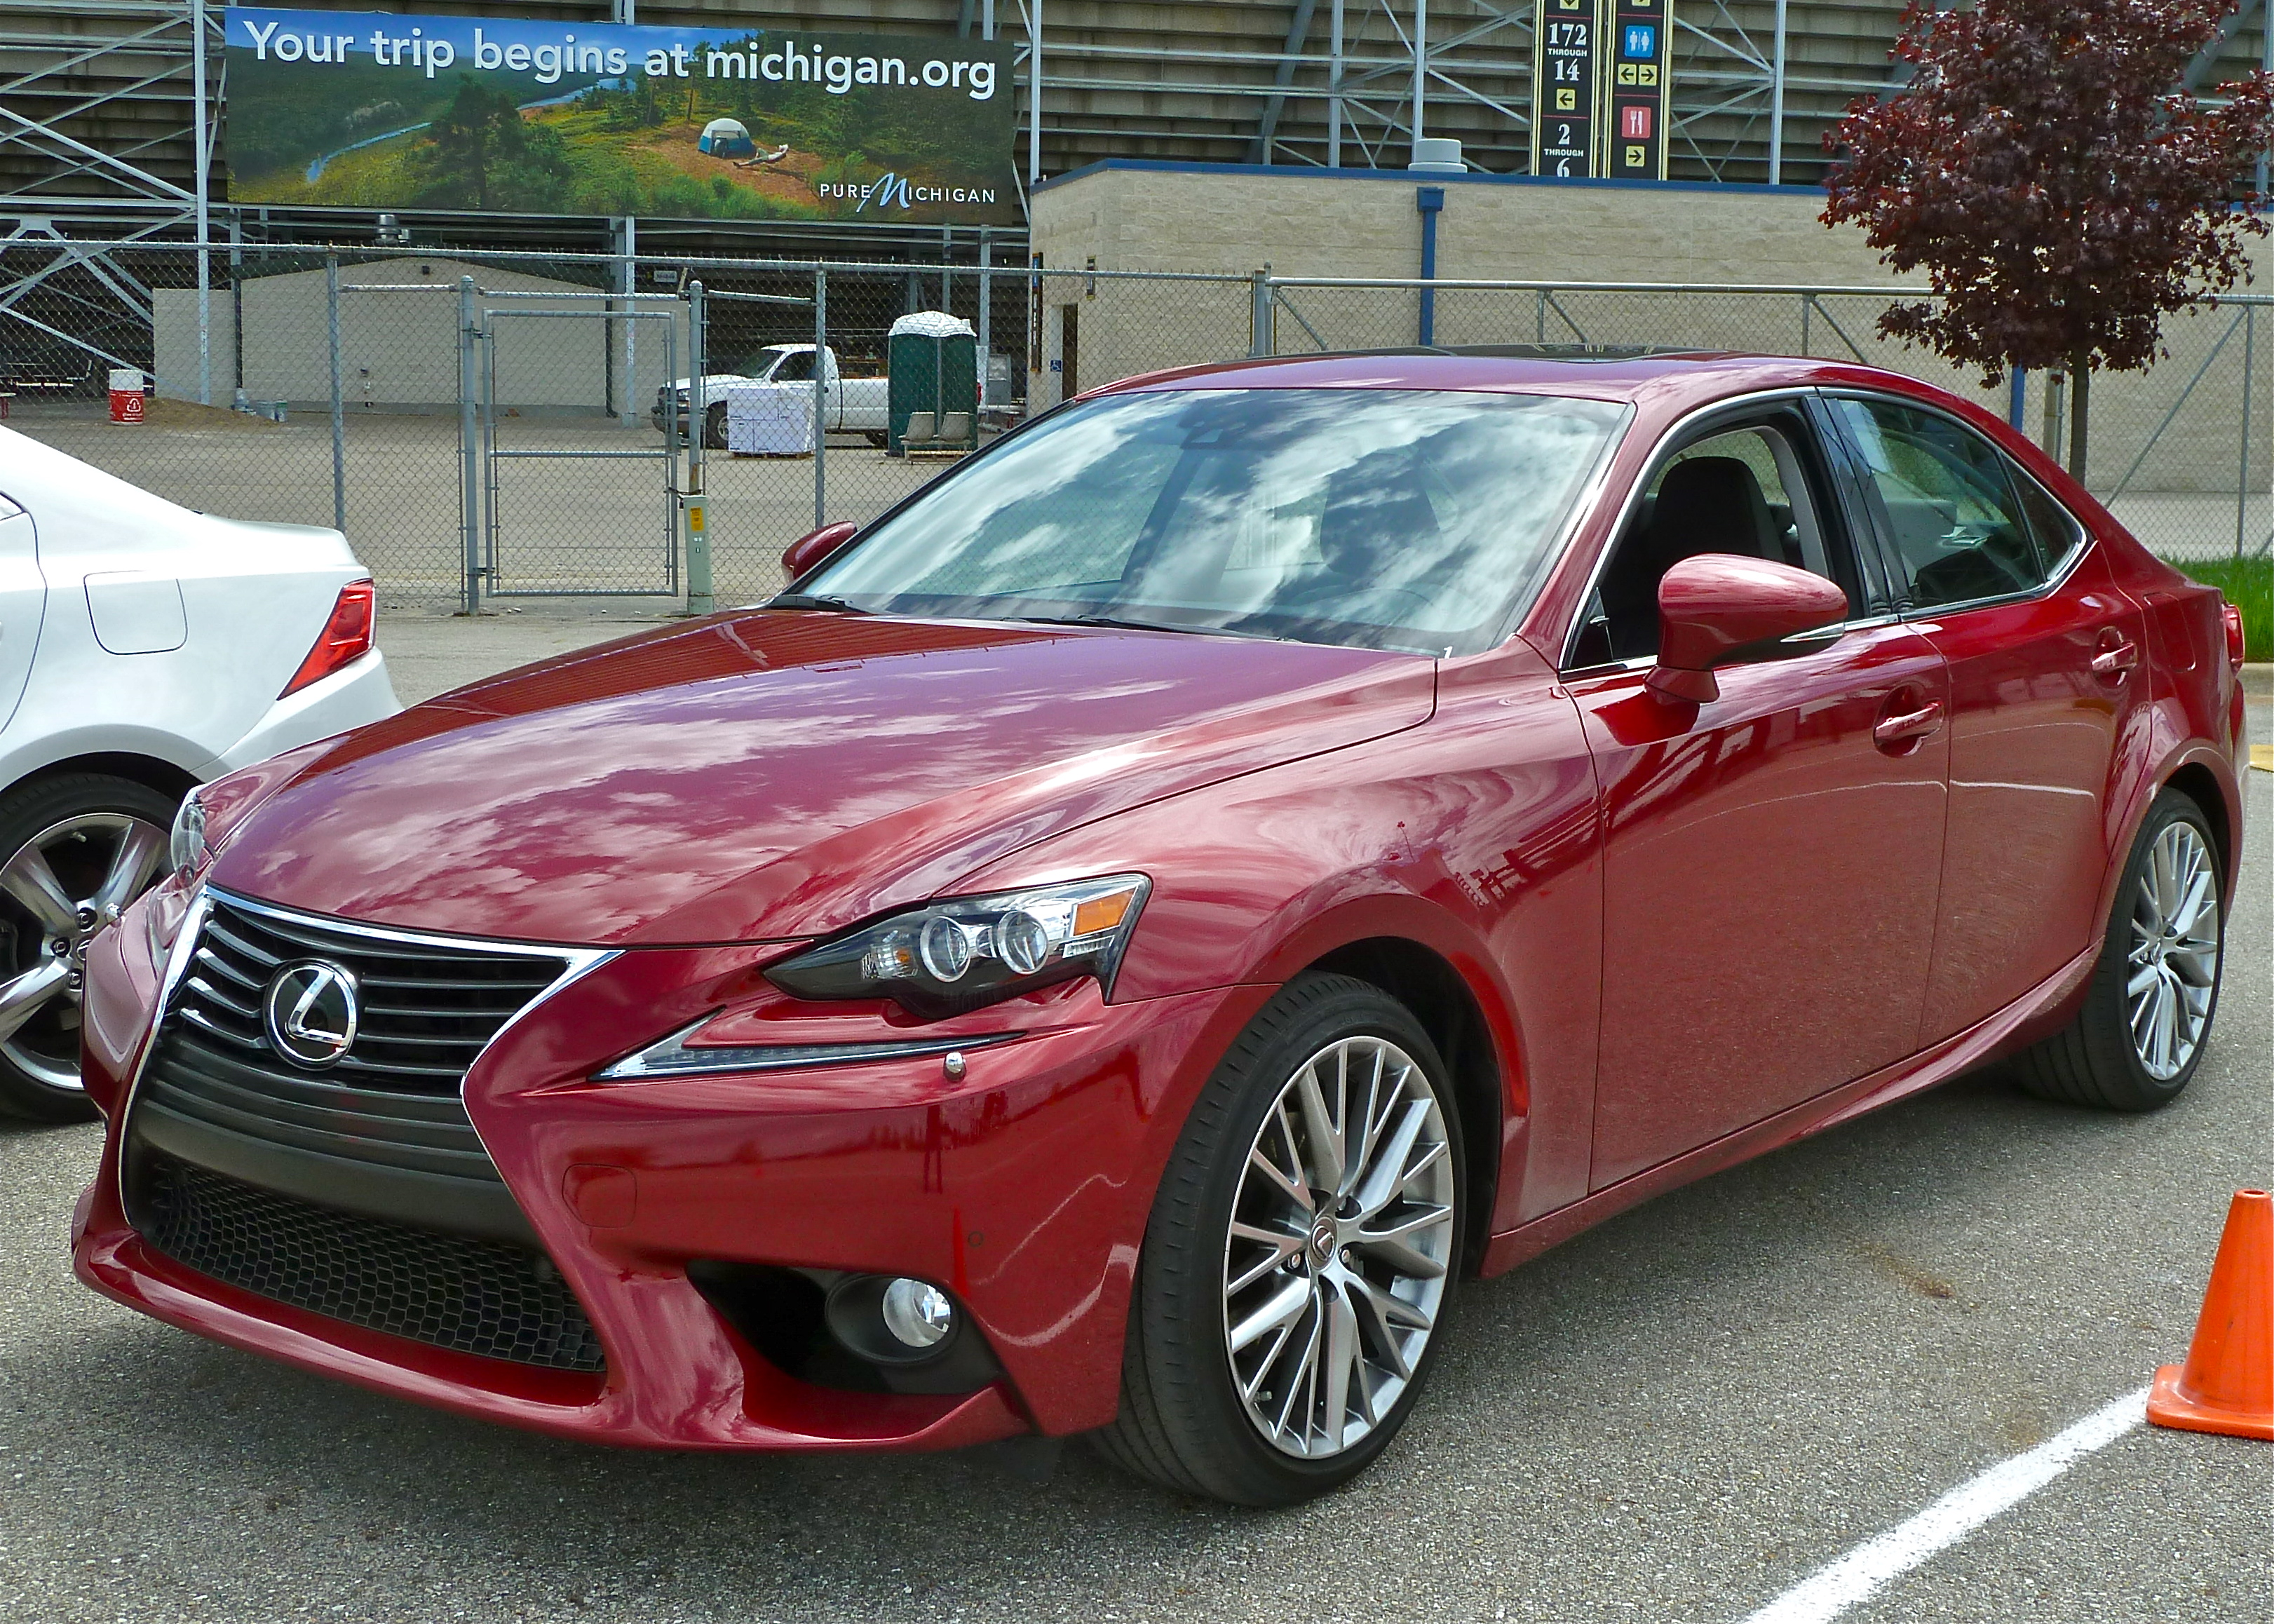 2013 lexus is 250 red 200 interior and exterior images. Black Bedroom Furniture Sets. Home Design Ideas